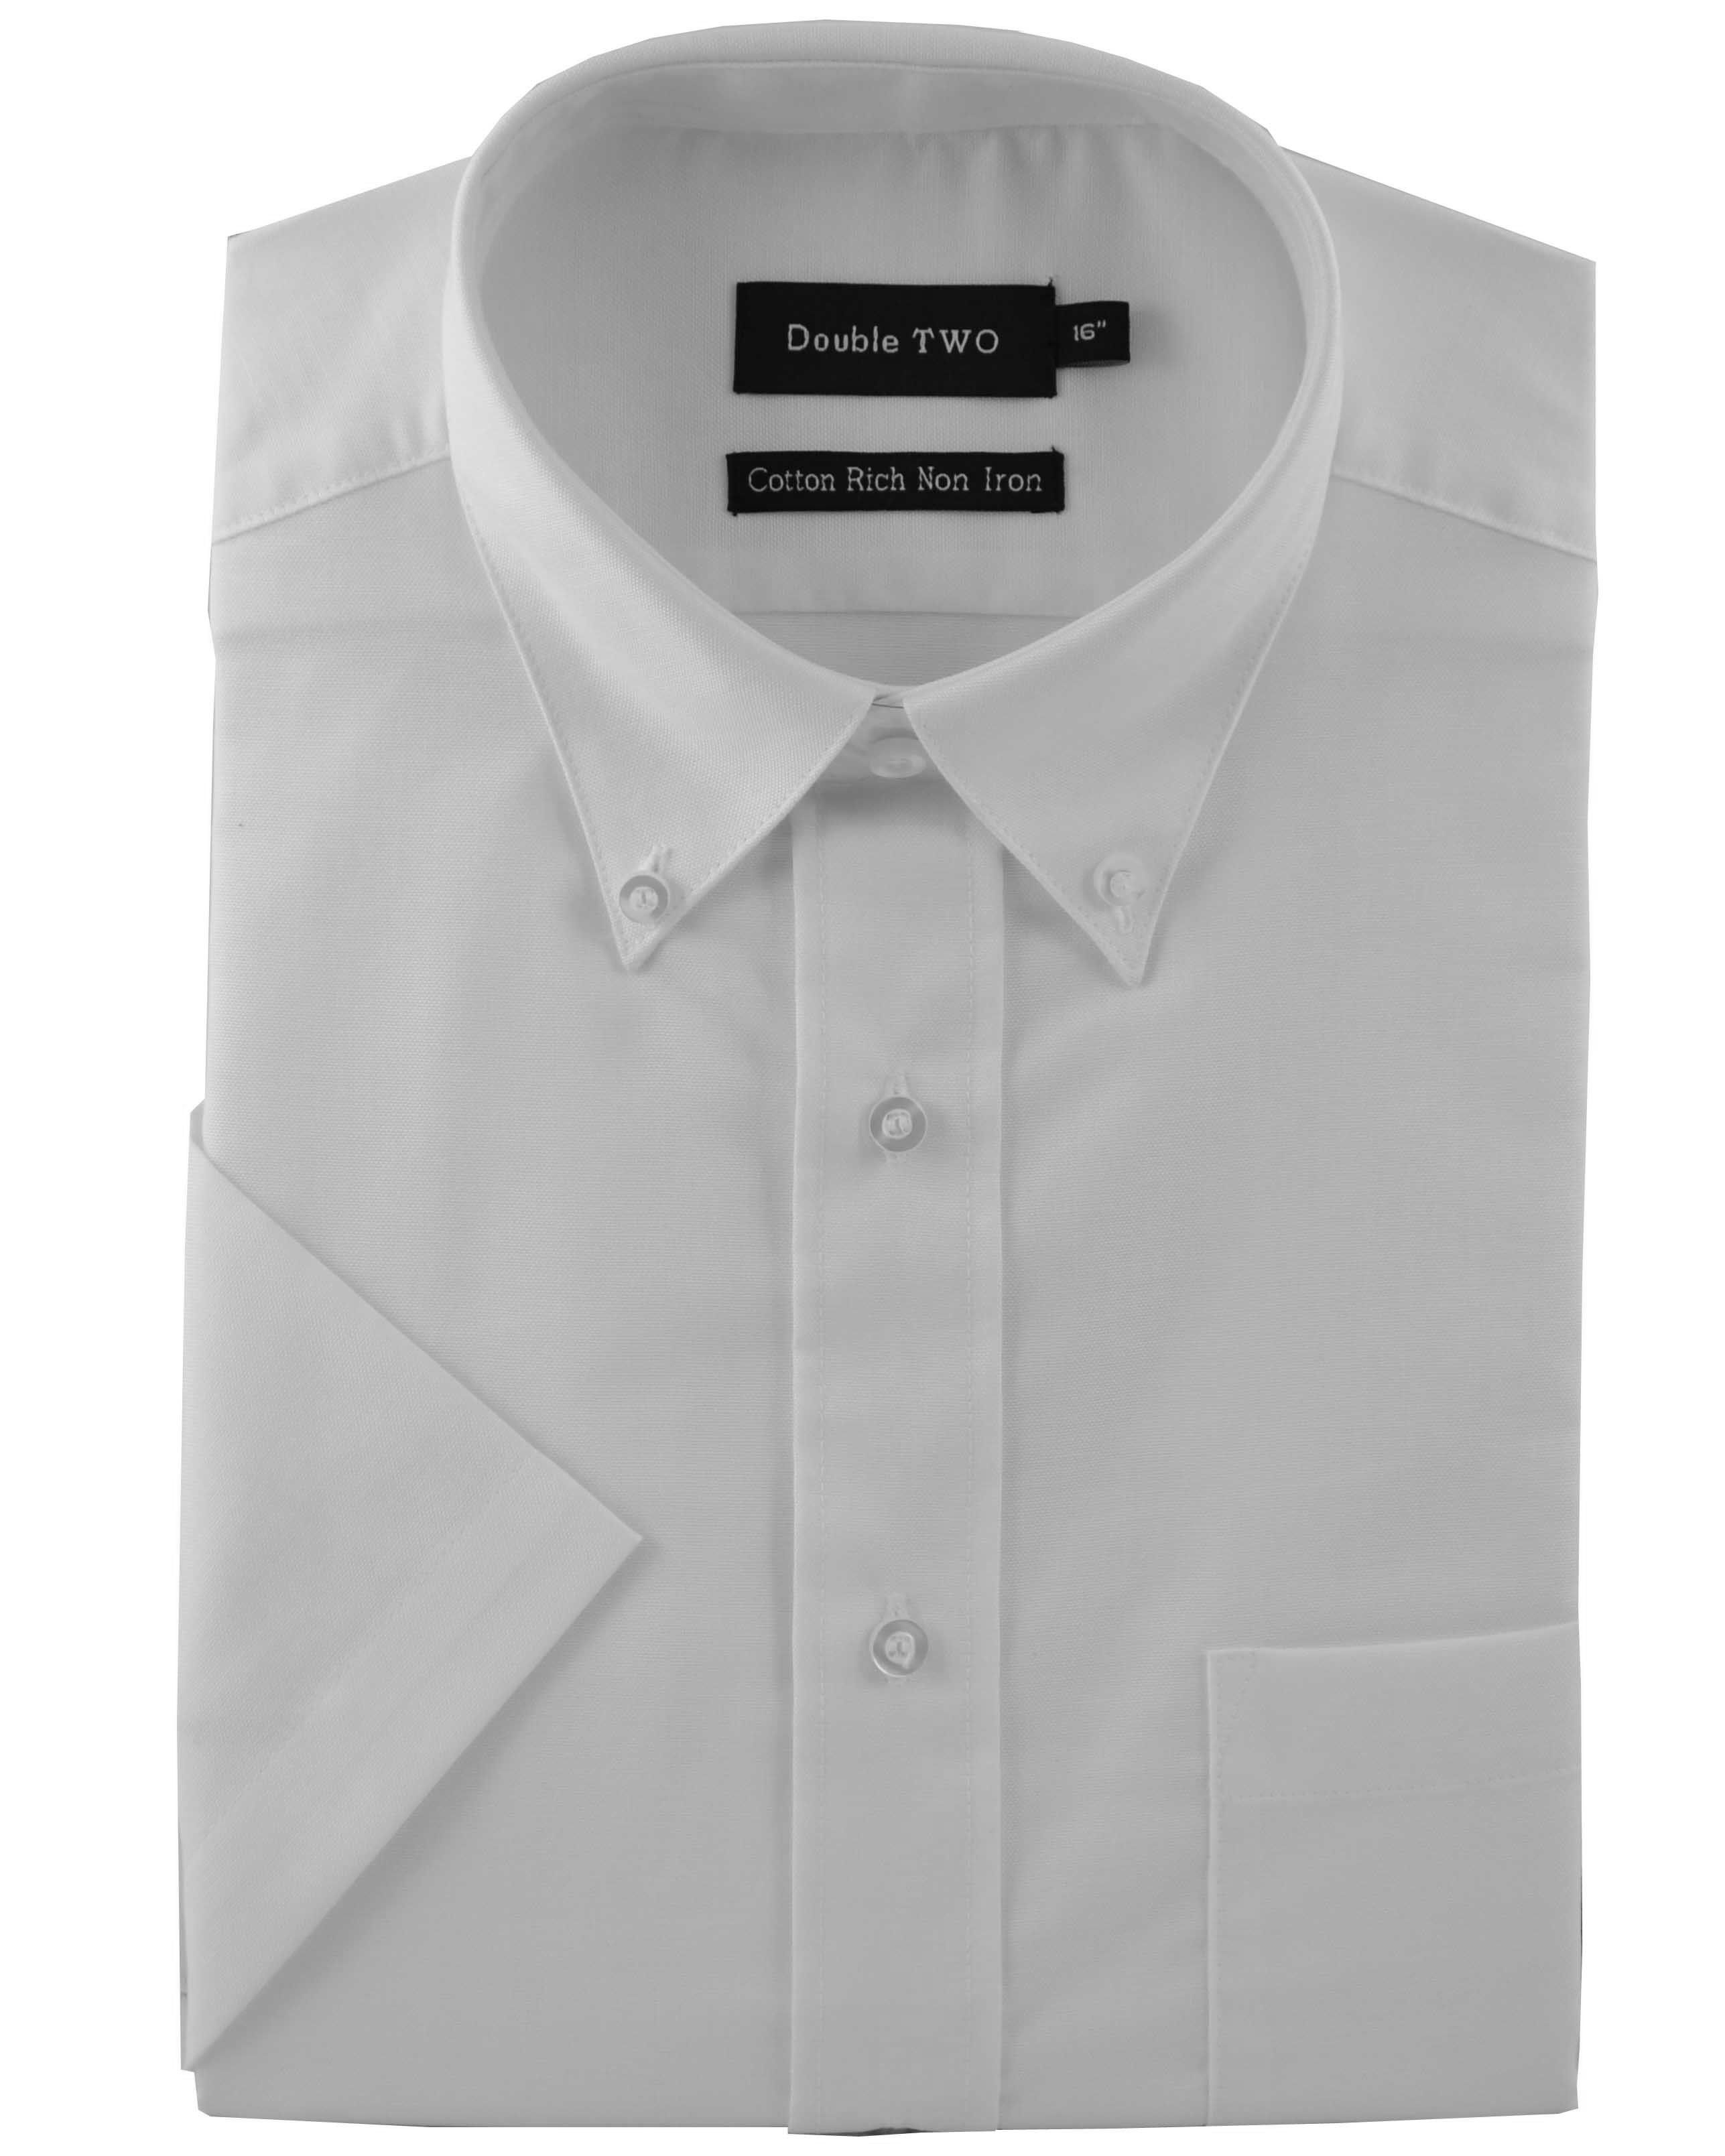 Half sleeve oxford formal shirt